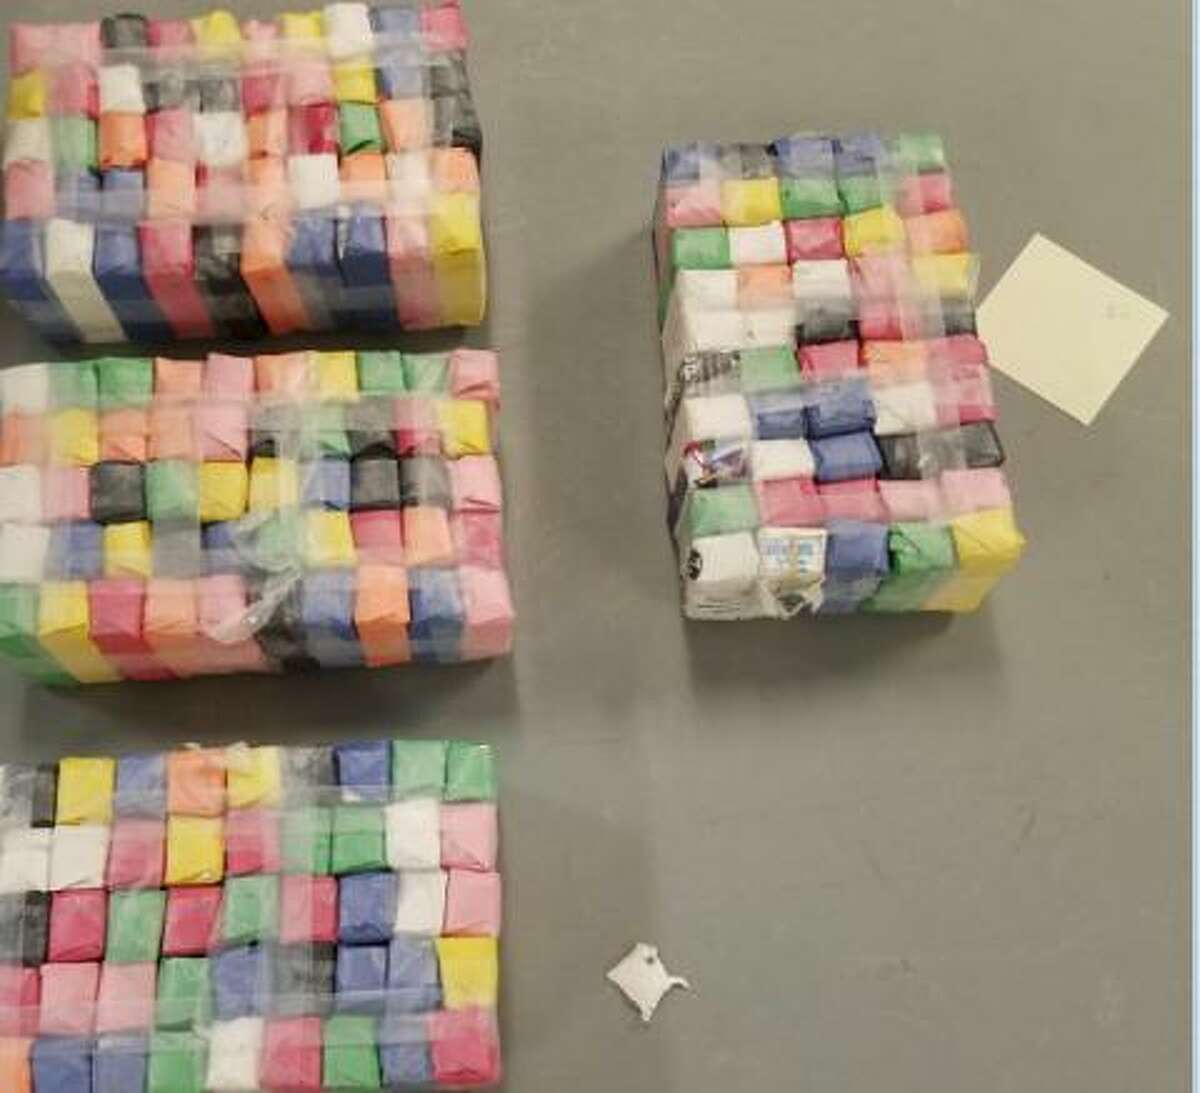 The drugs were already separated into 10,000 dosage units, and were ready for sale.